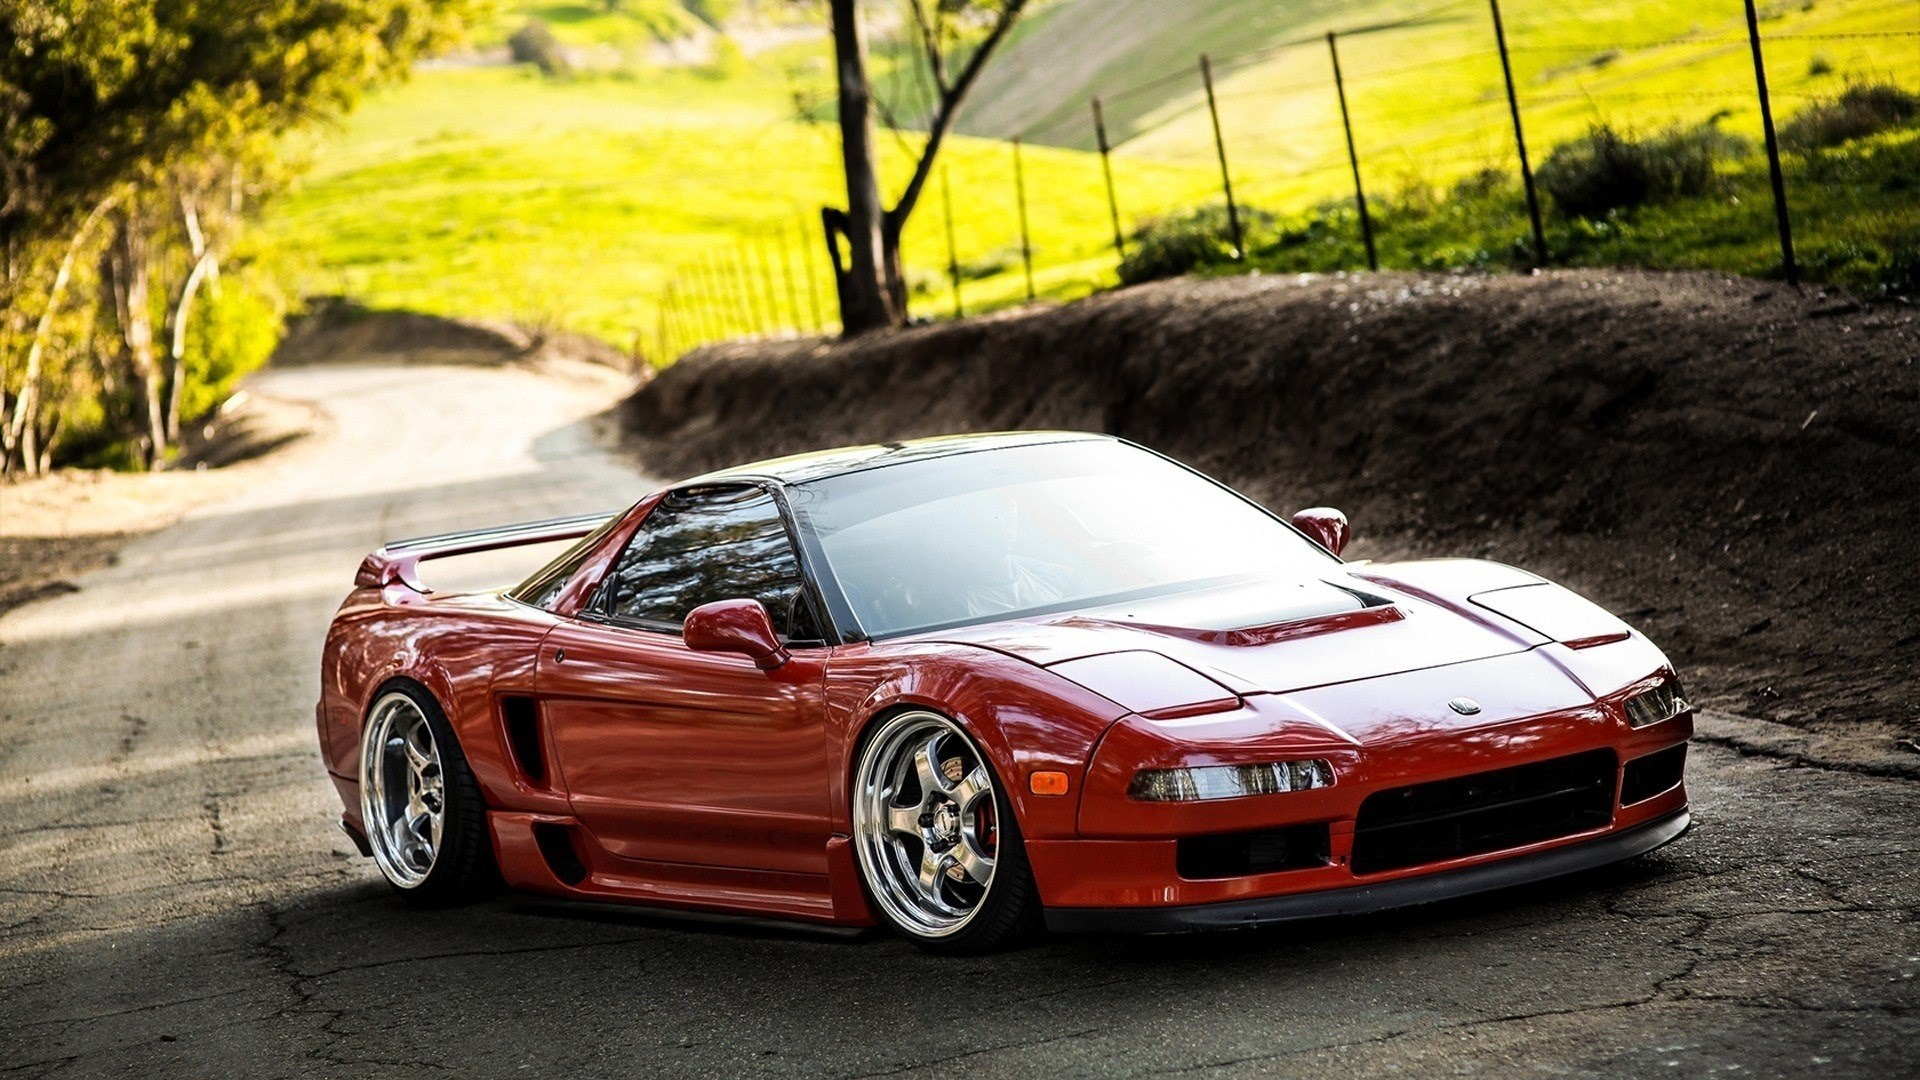 Nsx wallpaper hd 39517 1920x1080 px hdwallsource nsx wallpaper hd 39517 voltagebd Gallery